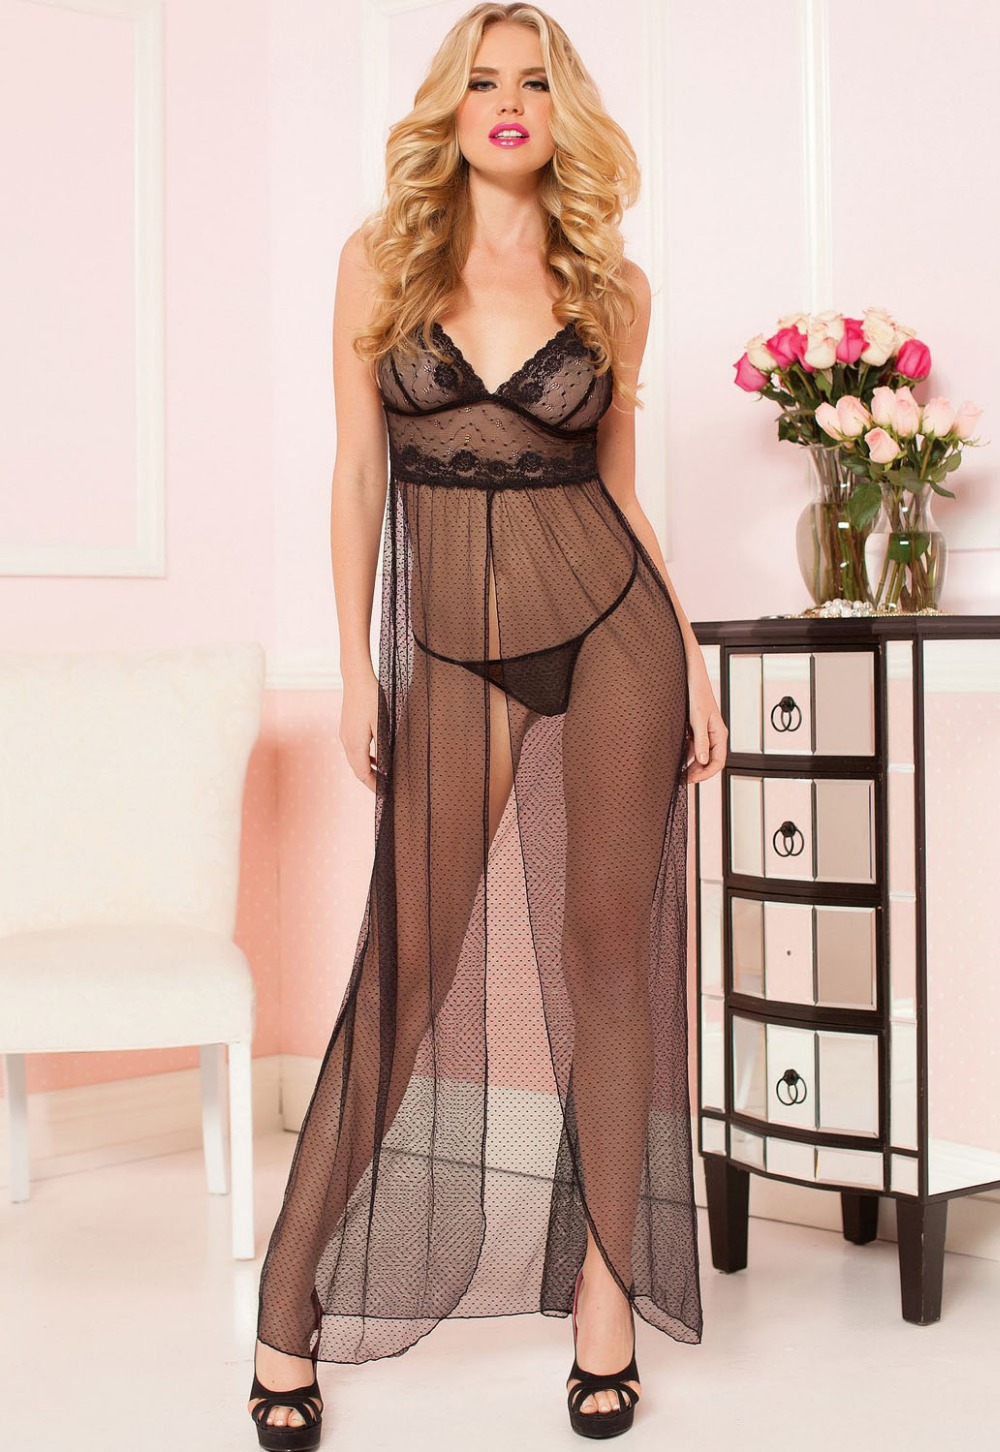 Aliexpress com buy dearlover nighties sexy lady exquisite black lace